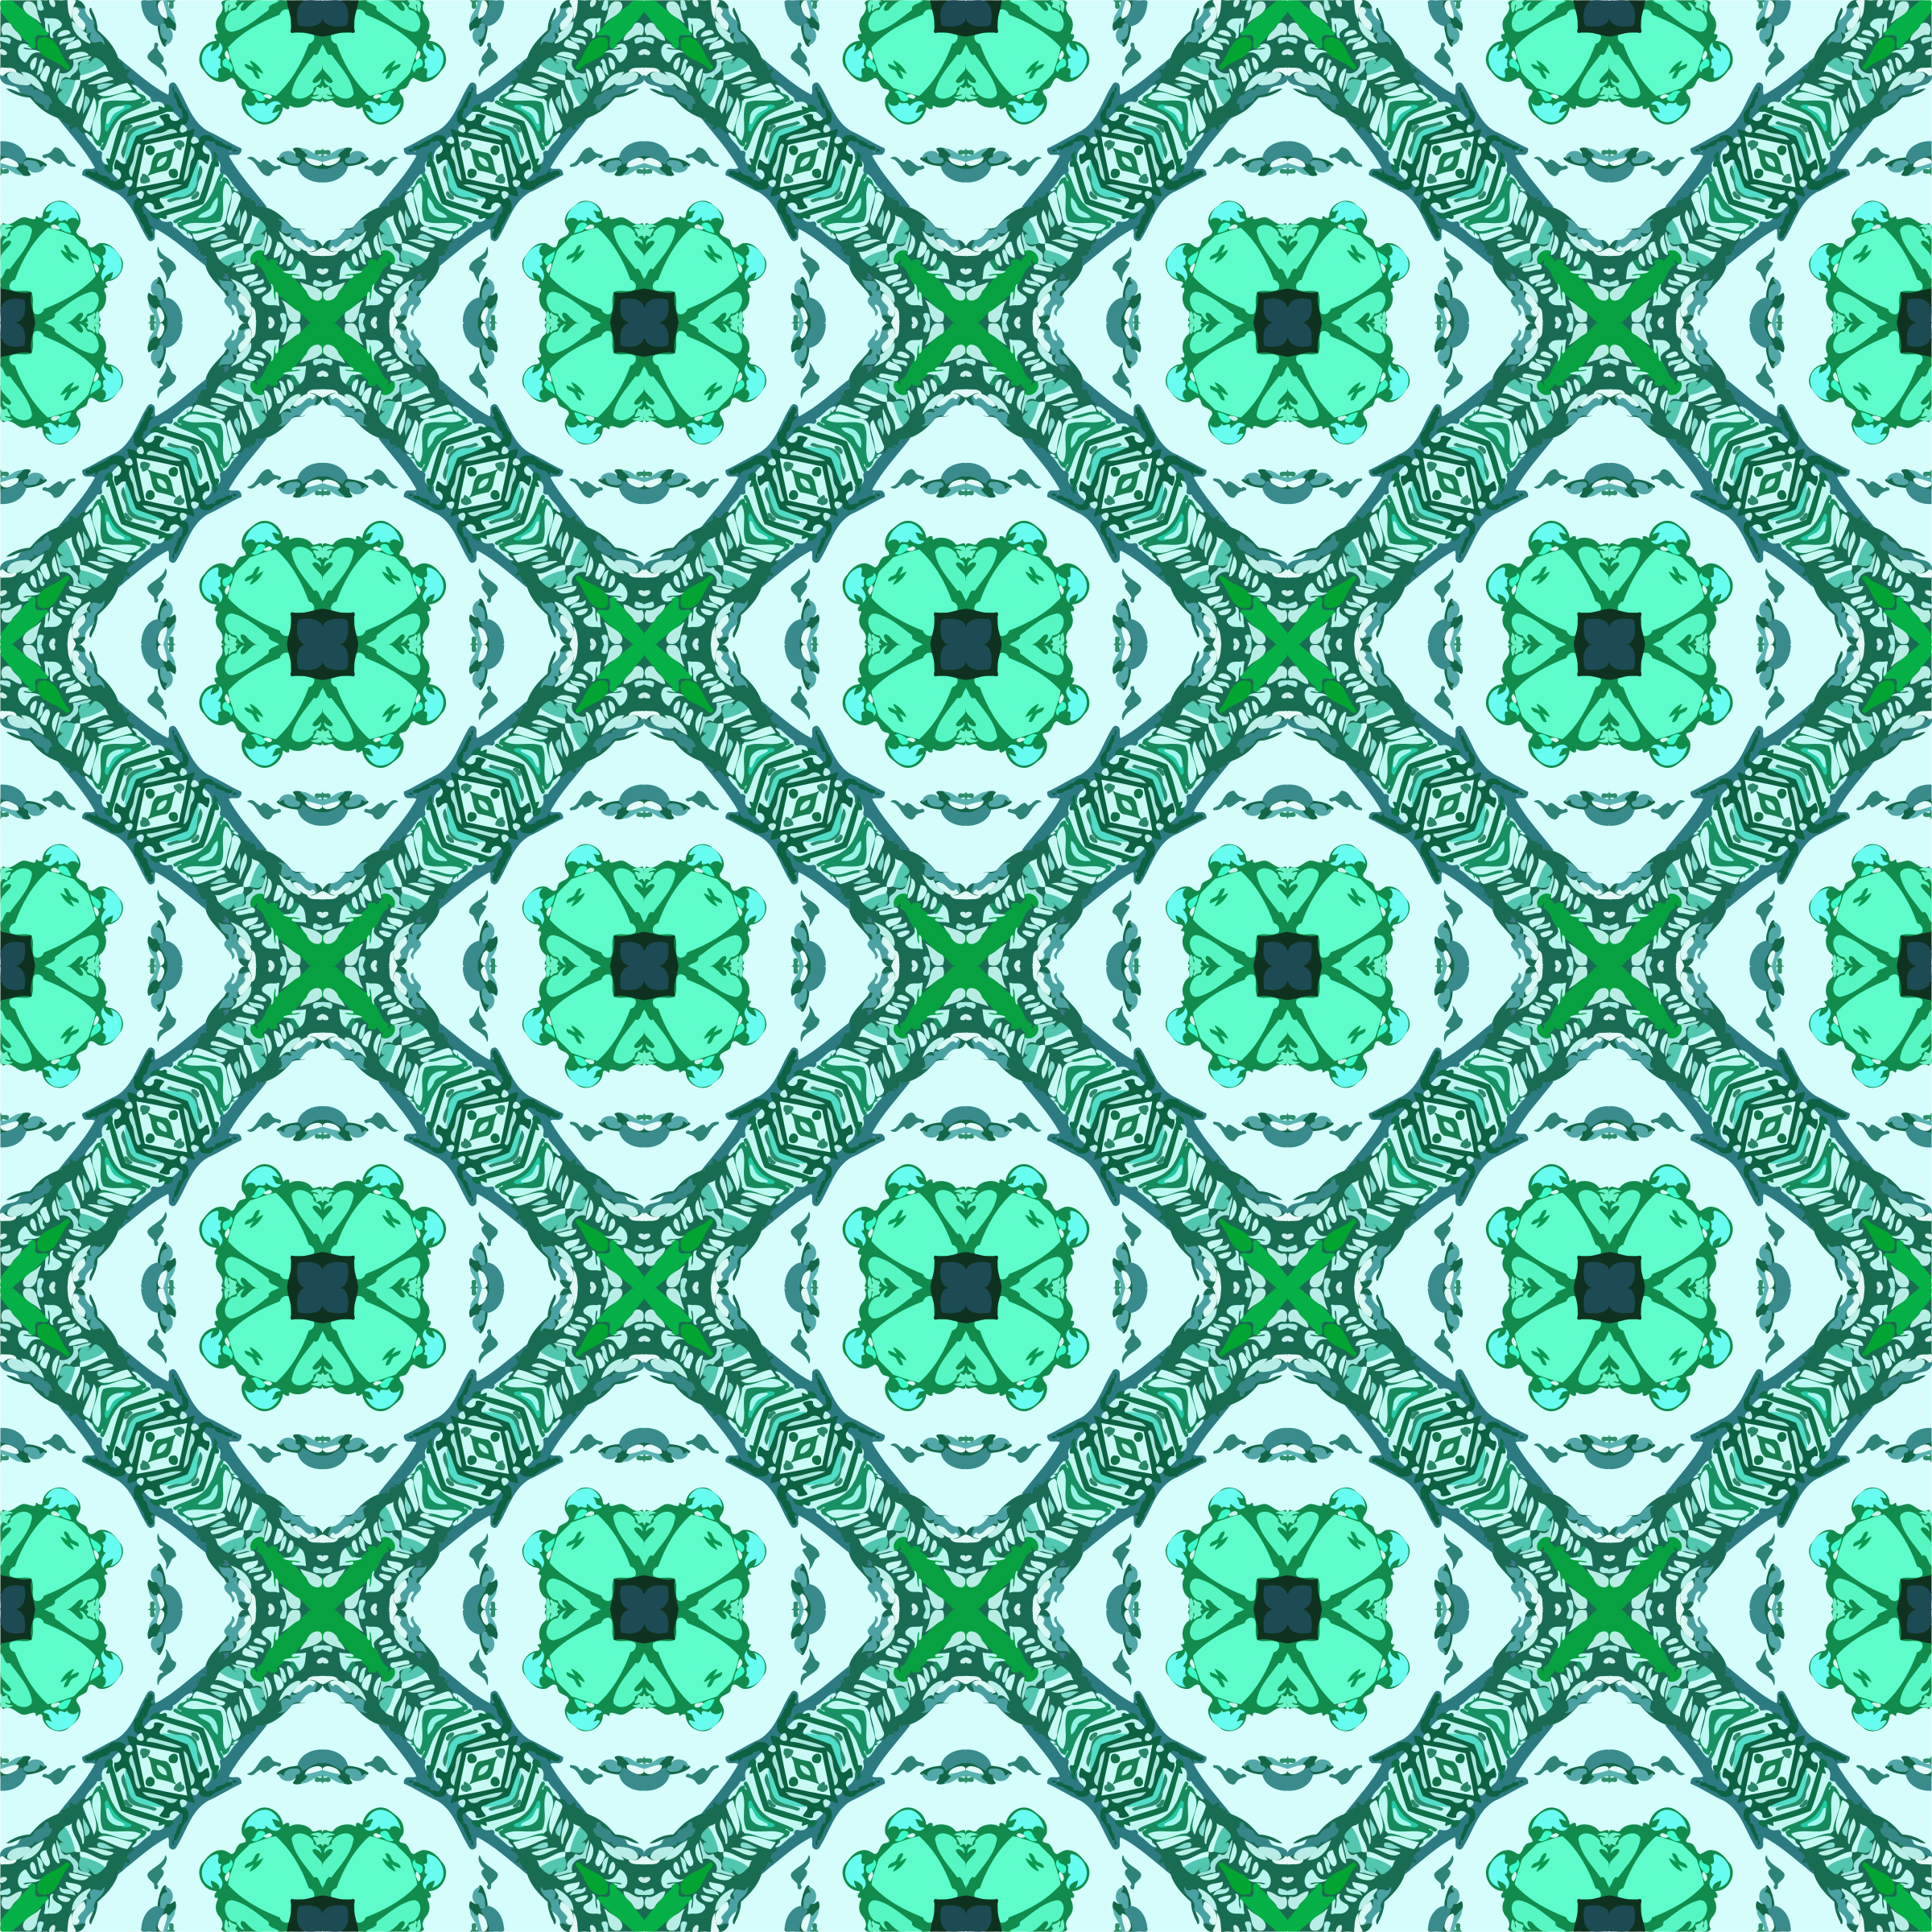 Background pattern 152 (colour 6) by Firkin